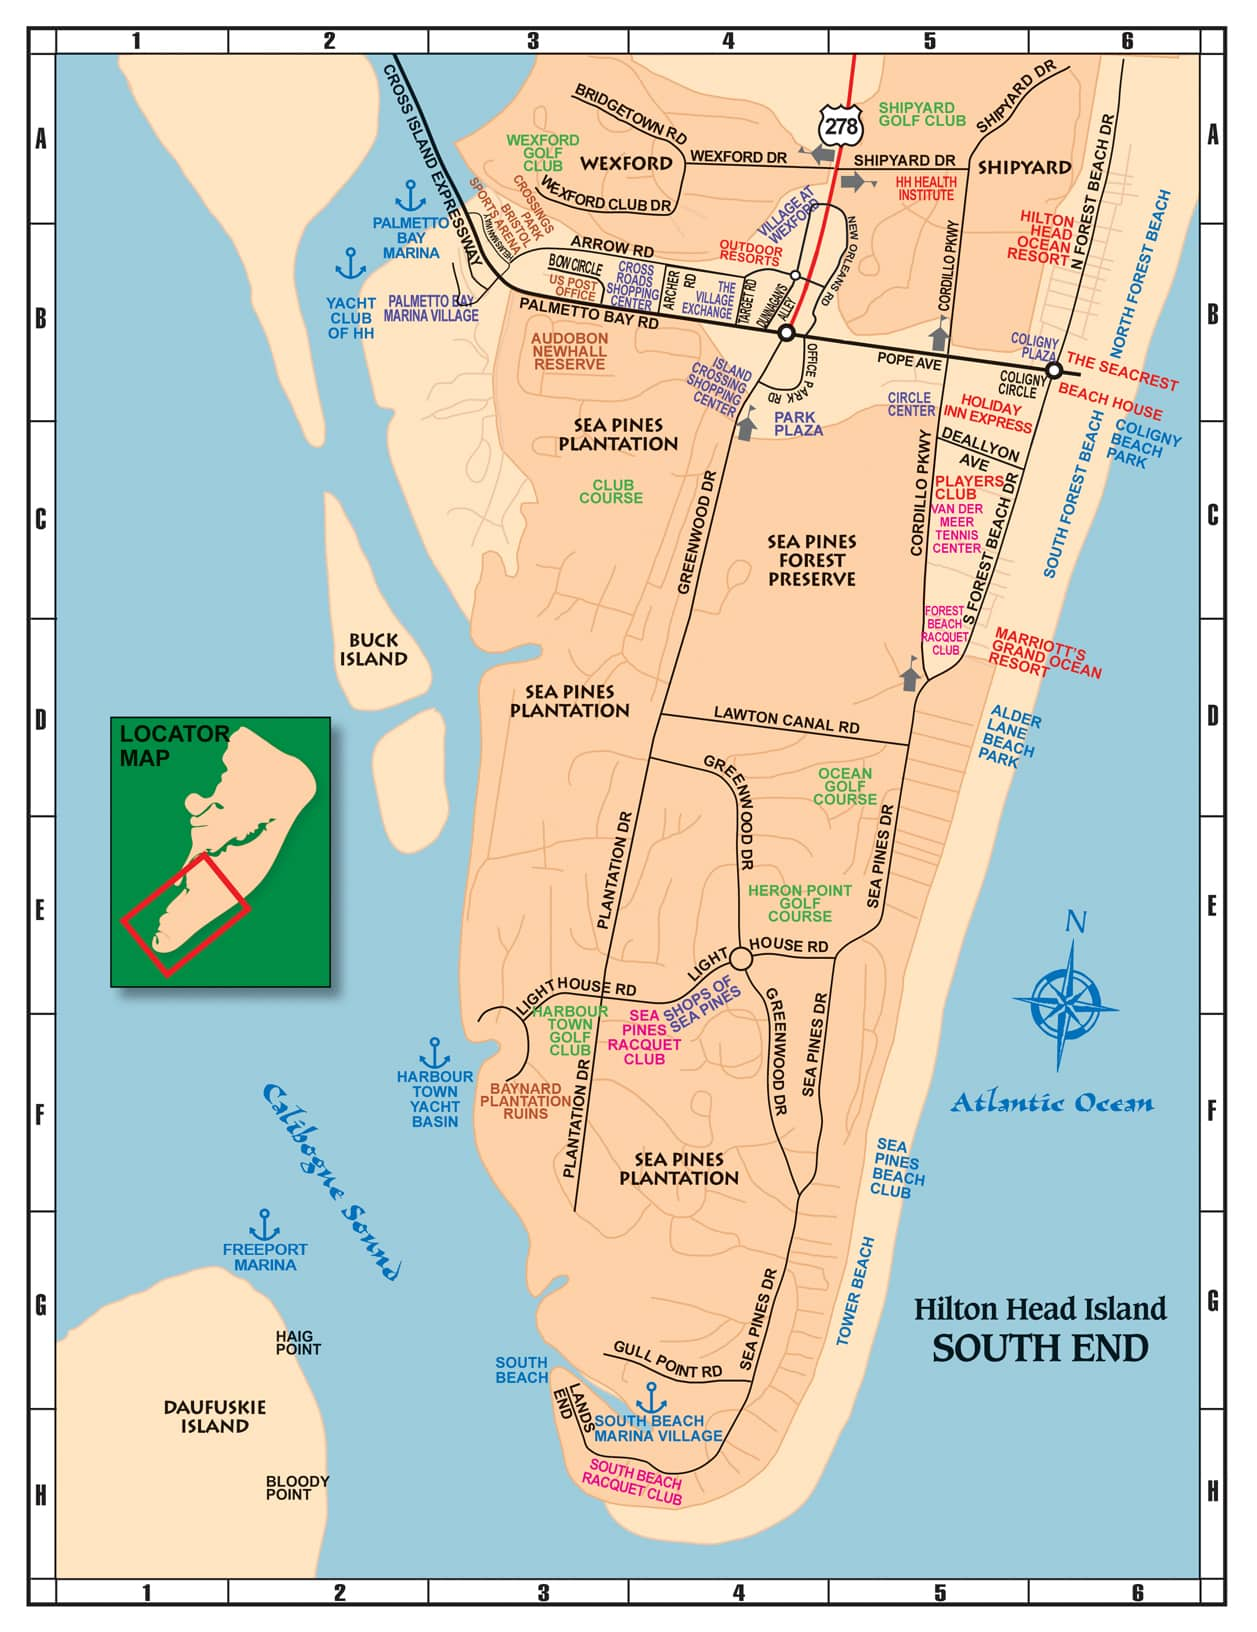 Savannah South Carolina Map.Maps Of Hilton Head The Lowcountry Savannah 101 Things To Do